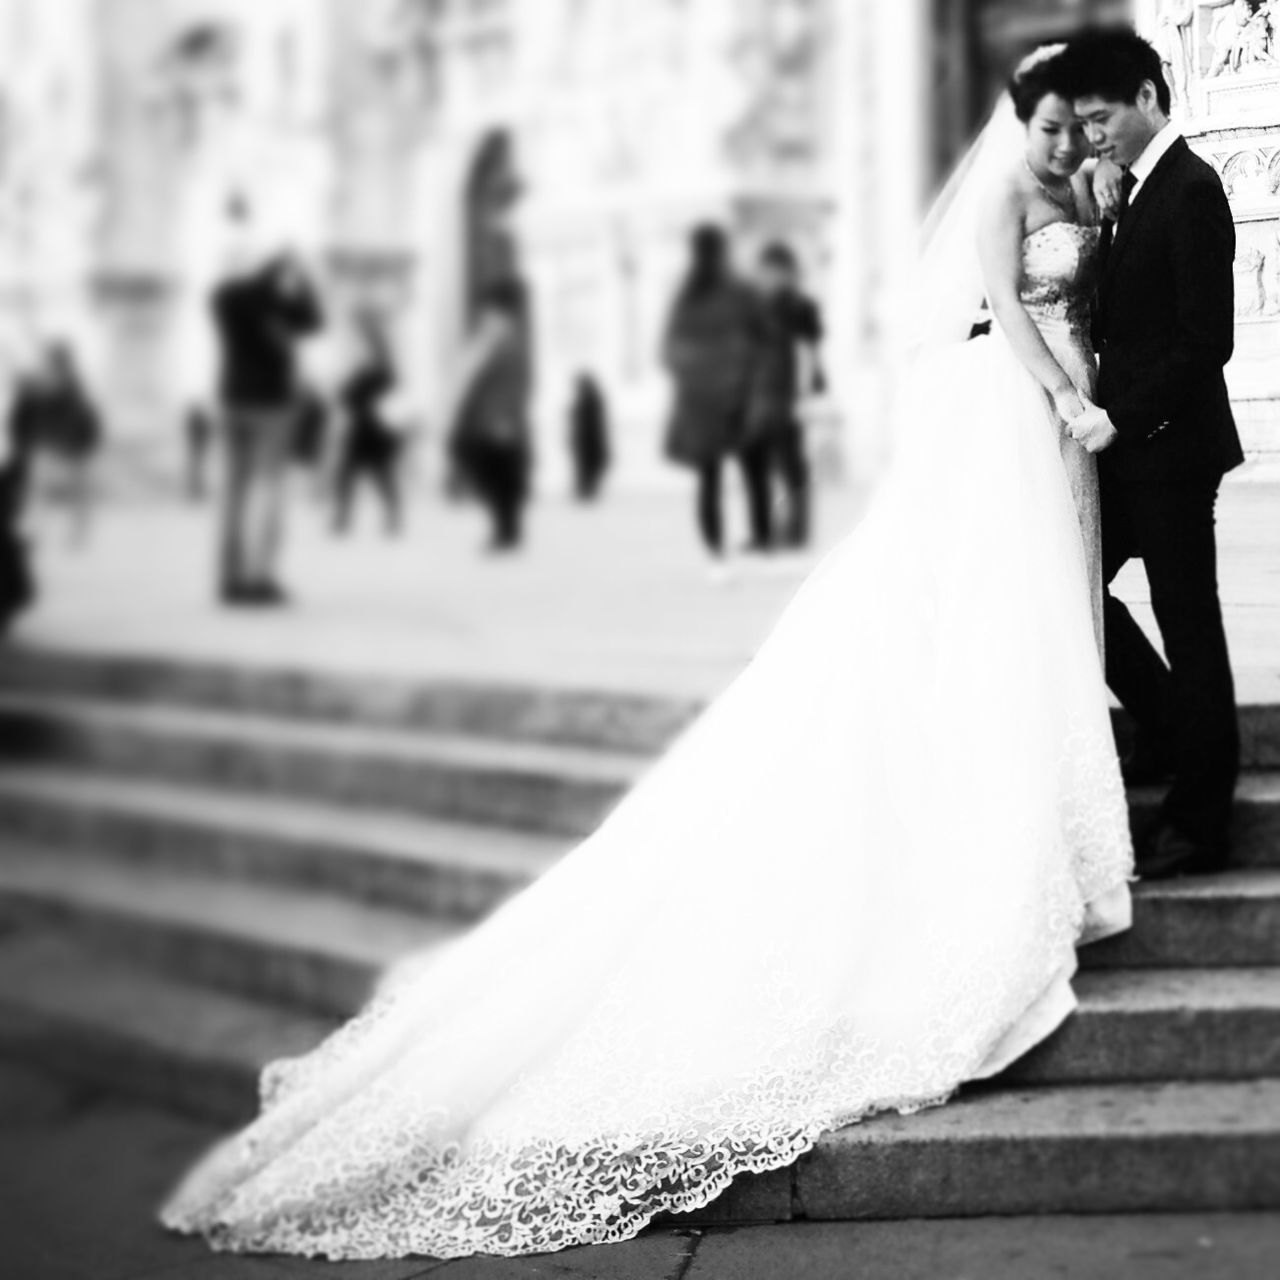 bride, wedding, wedding dress, bridegroom, men, life events, celebration, white color, real people, women, groom, well-dressed, day, togetherness, outdoors, people